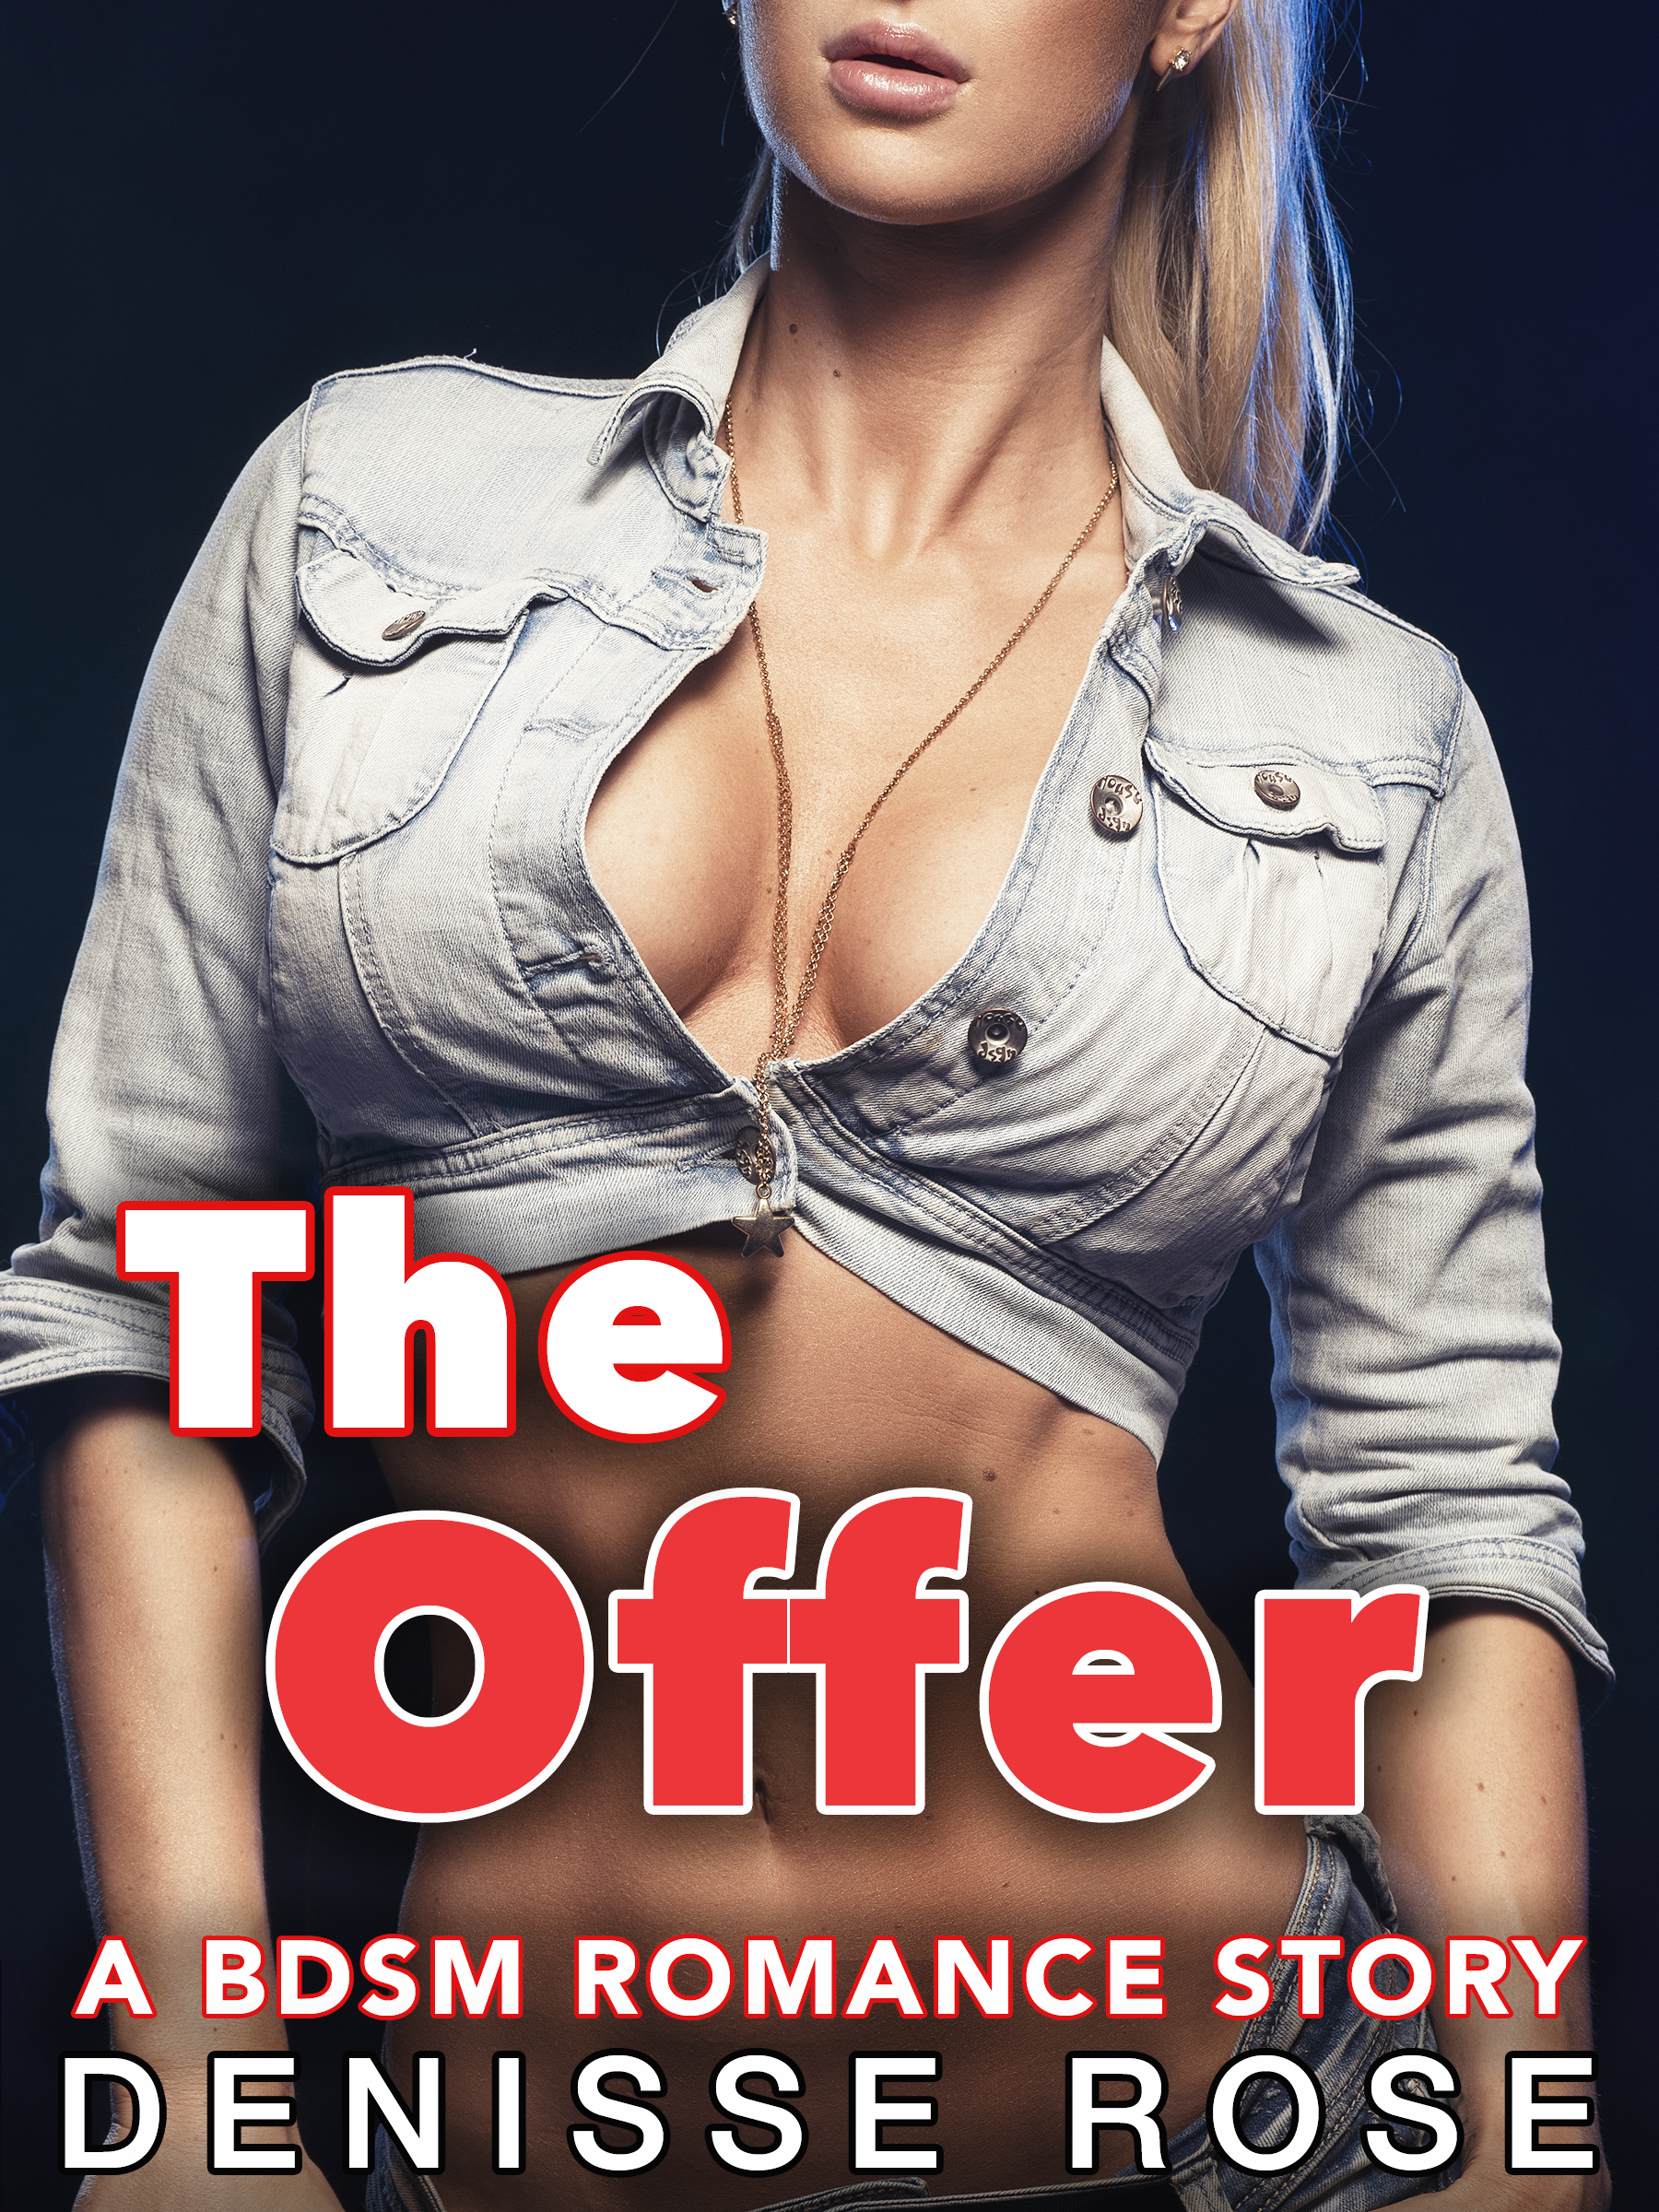 The offer: a bdsm romance story